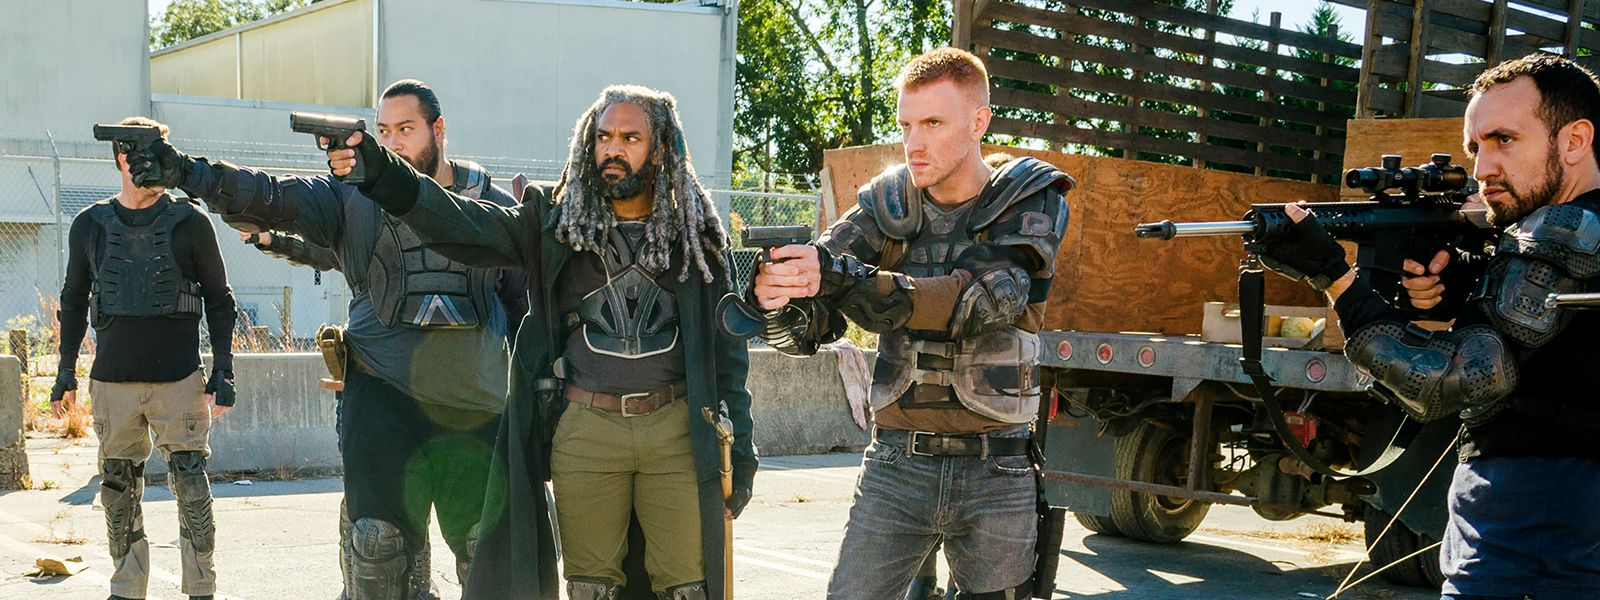 the-walking-dead-episode-713-ezekiel-payton-jerry-andrews-post-800×600